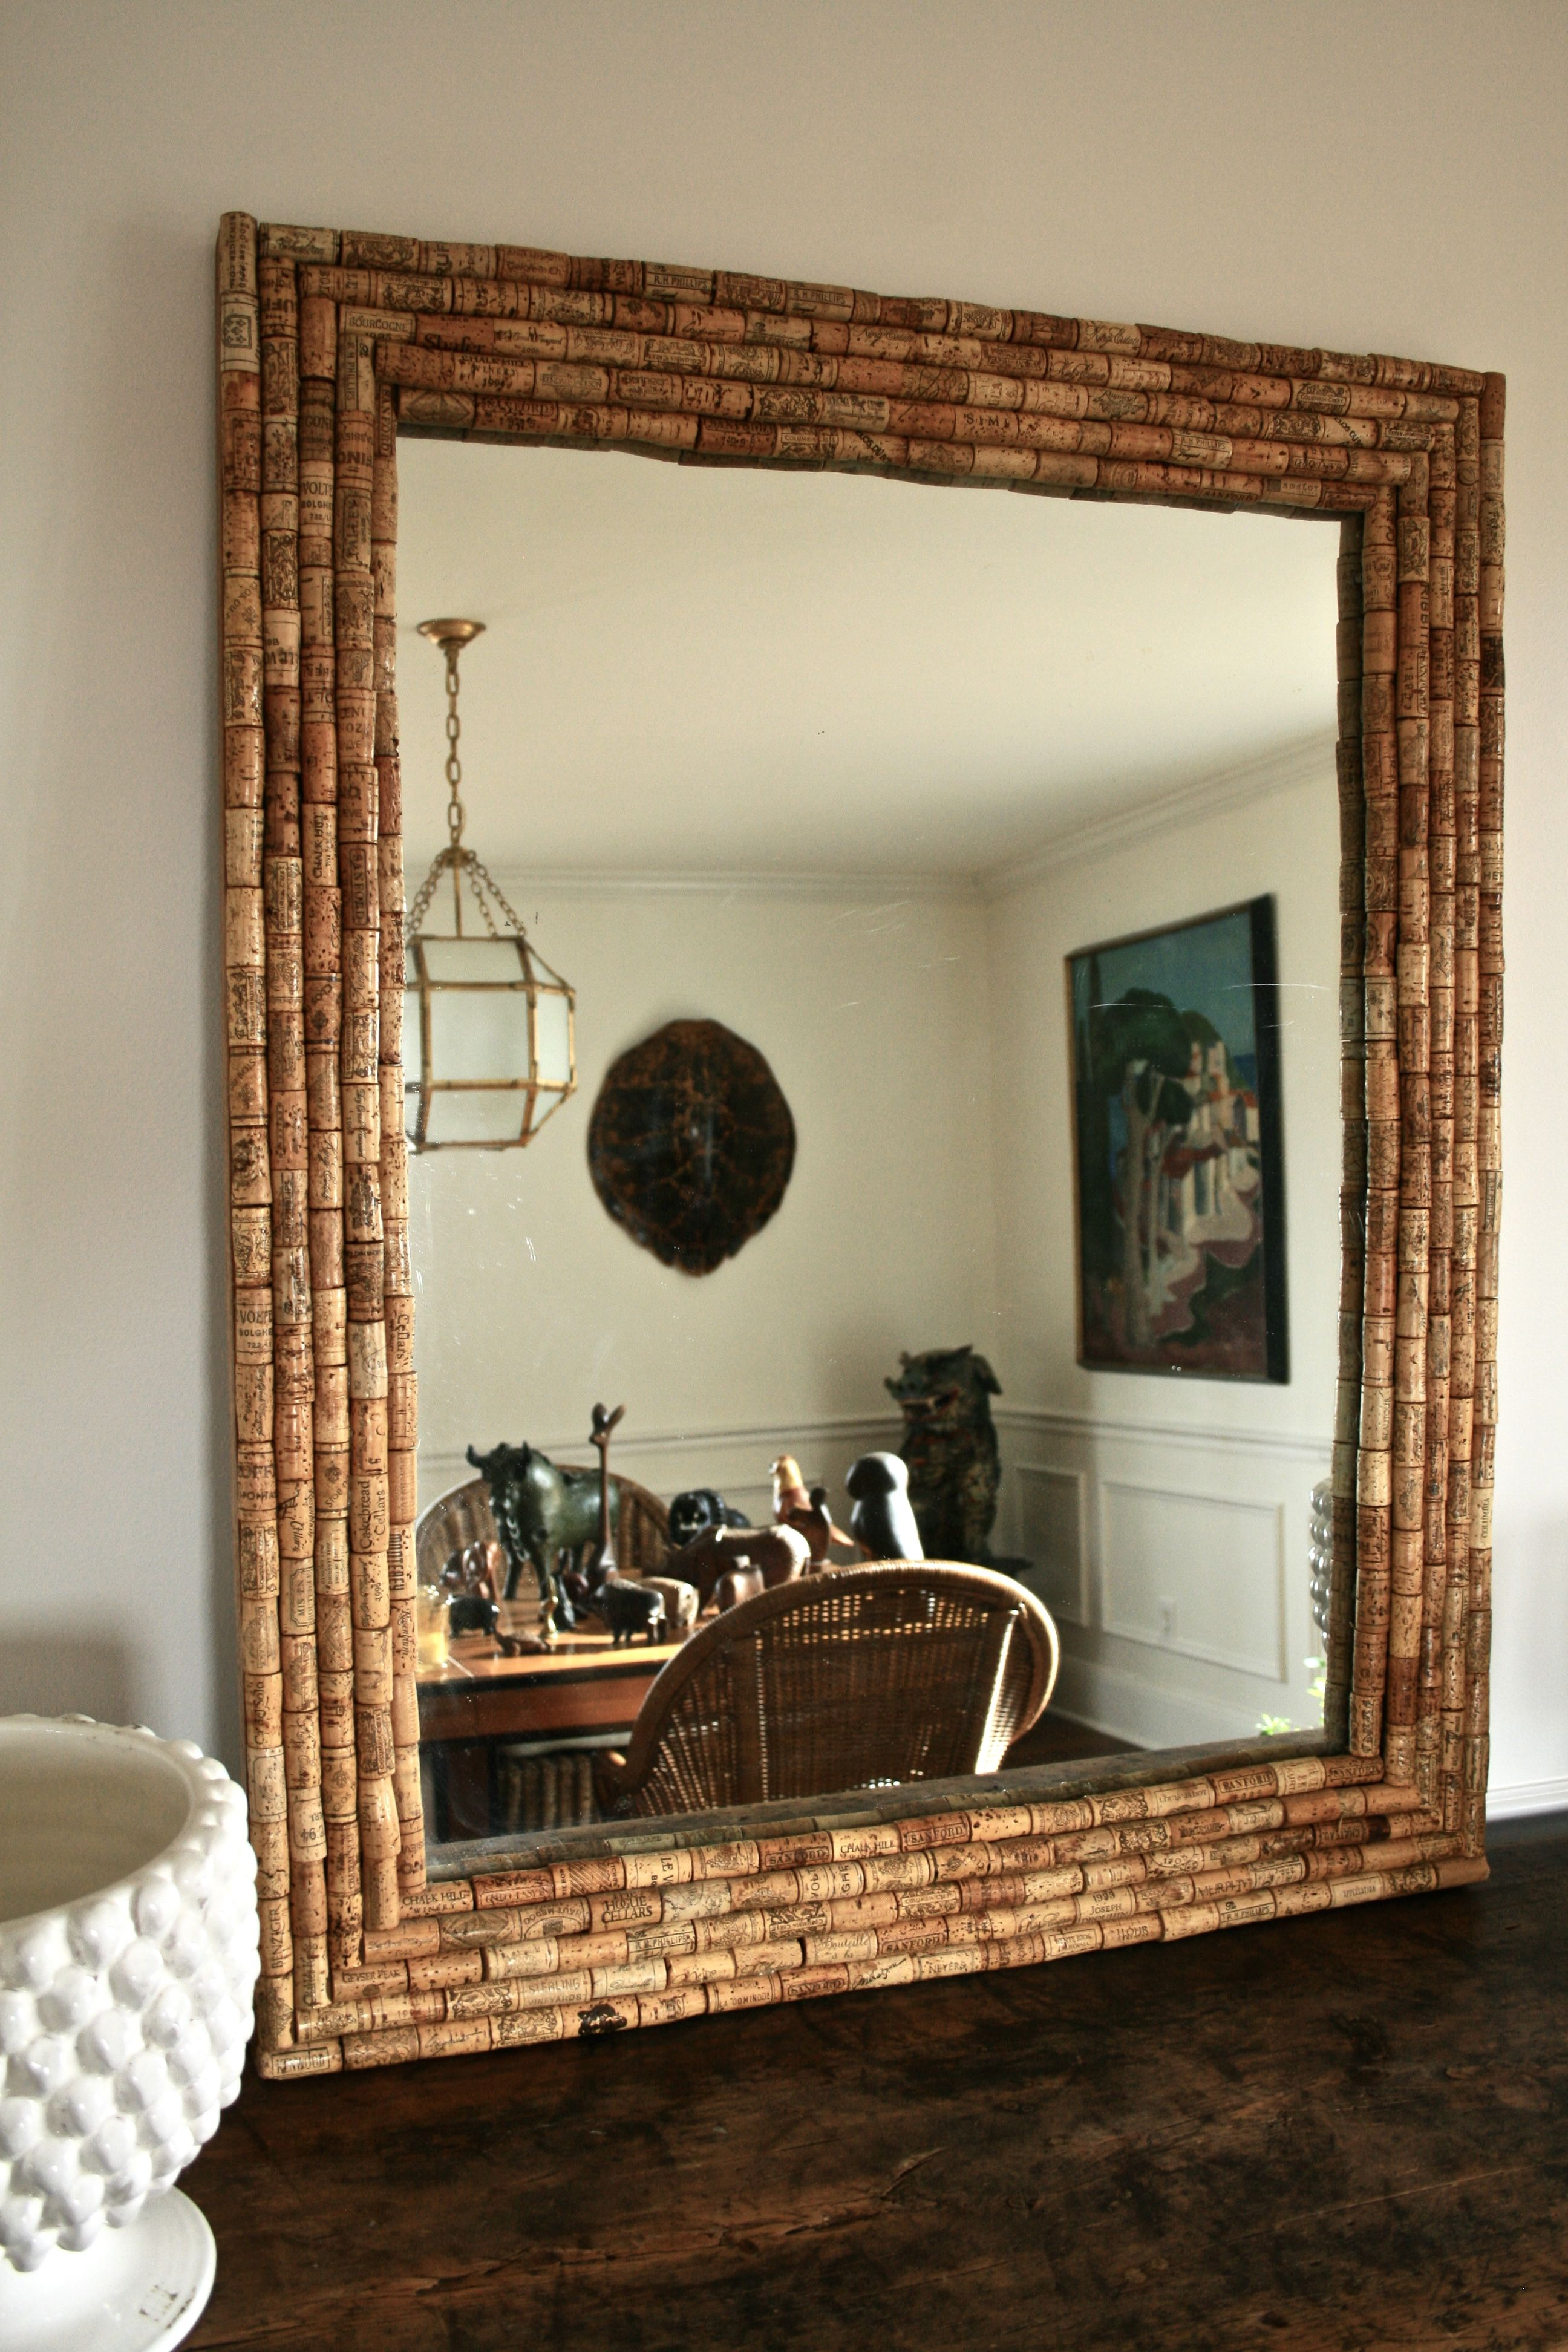 Wine Cork Mirror For Living Room In 2020 Living Room Mirrors Decor Home Decor #oversized #mirrors #living #room